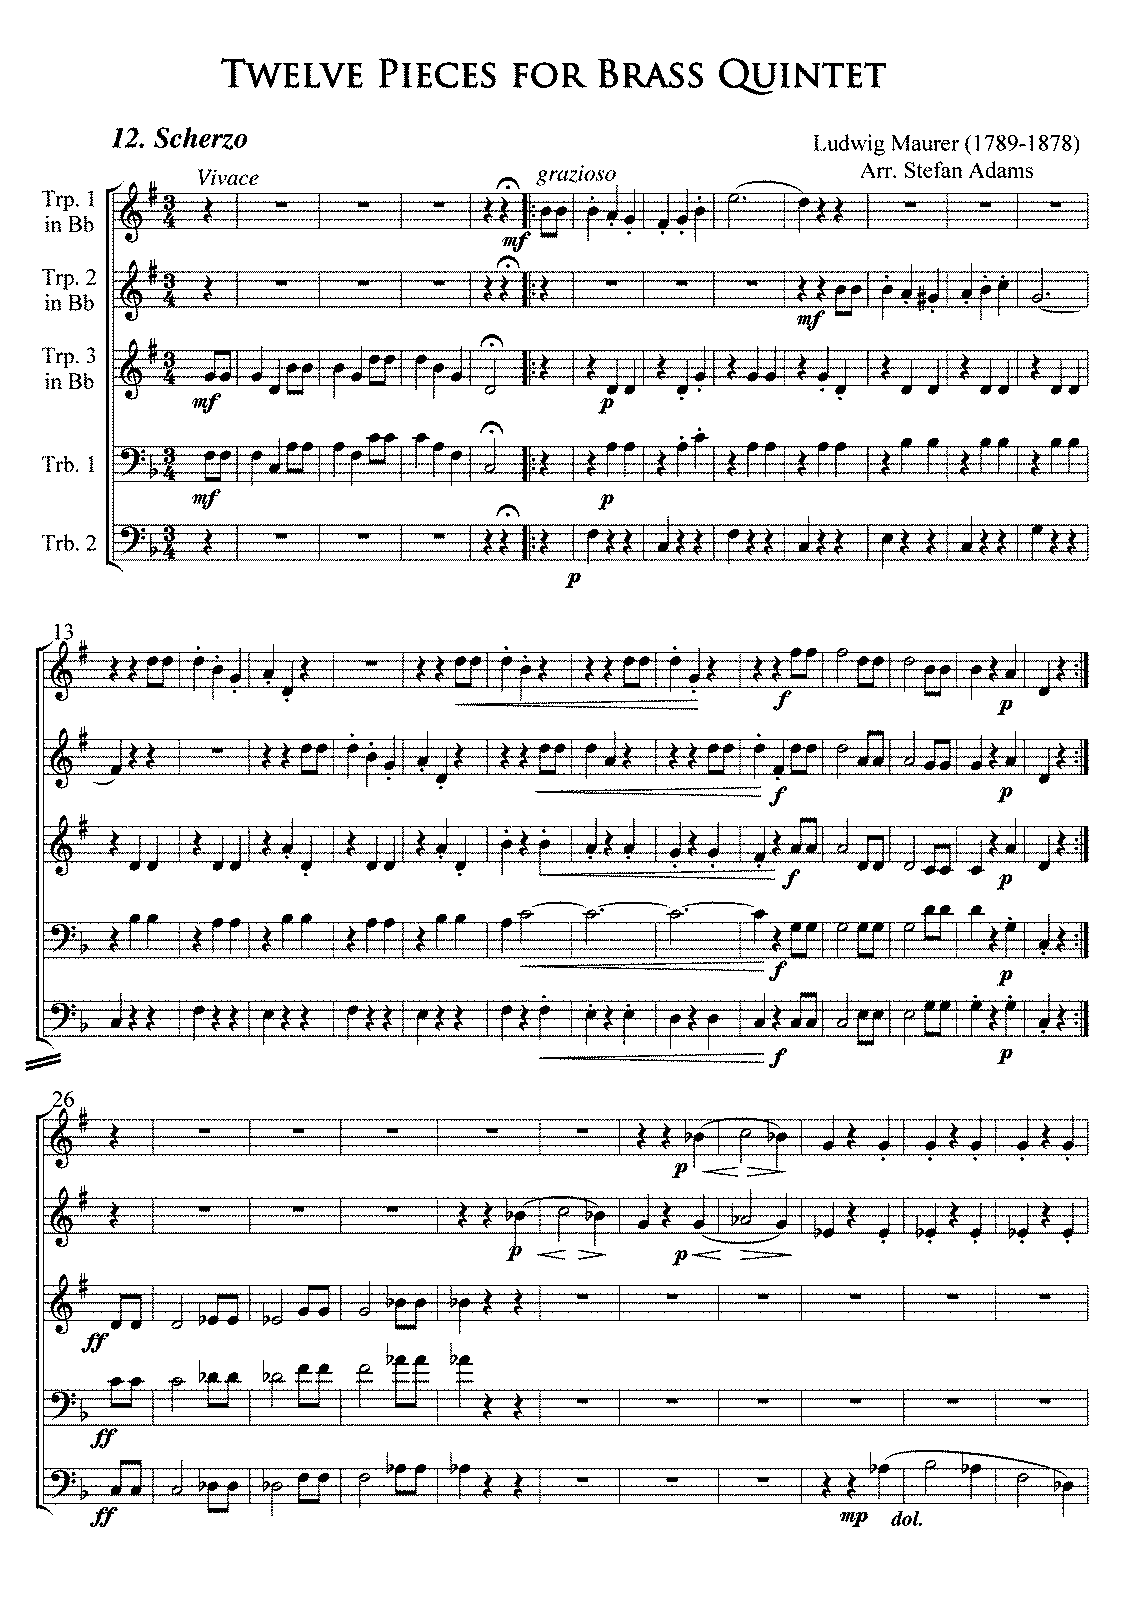 PMLP185891-Maurer Nr12-Scherzo Full Score with Trumpets in Bb.pdf